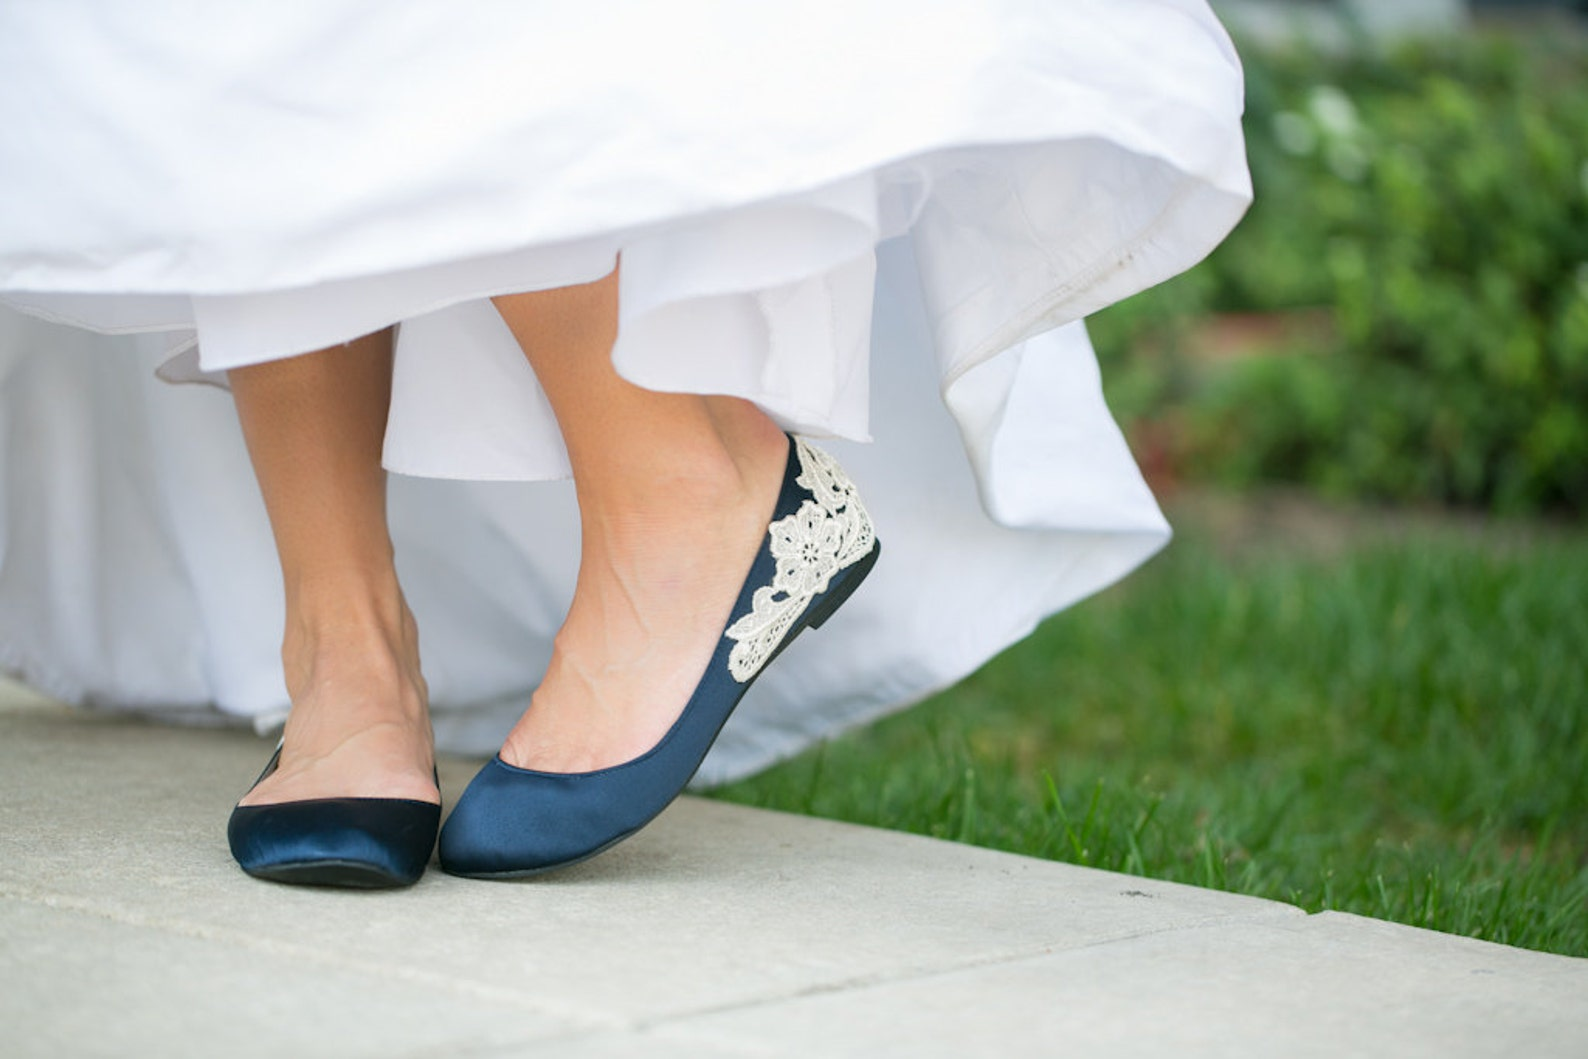 wedding flats,navy blue wedding shoes,ballet flats,bridal flats,navy flats,blue flats,navy satin flats,bride,bridal shoes with i